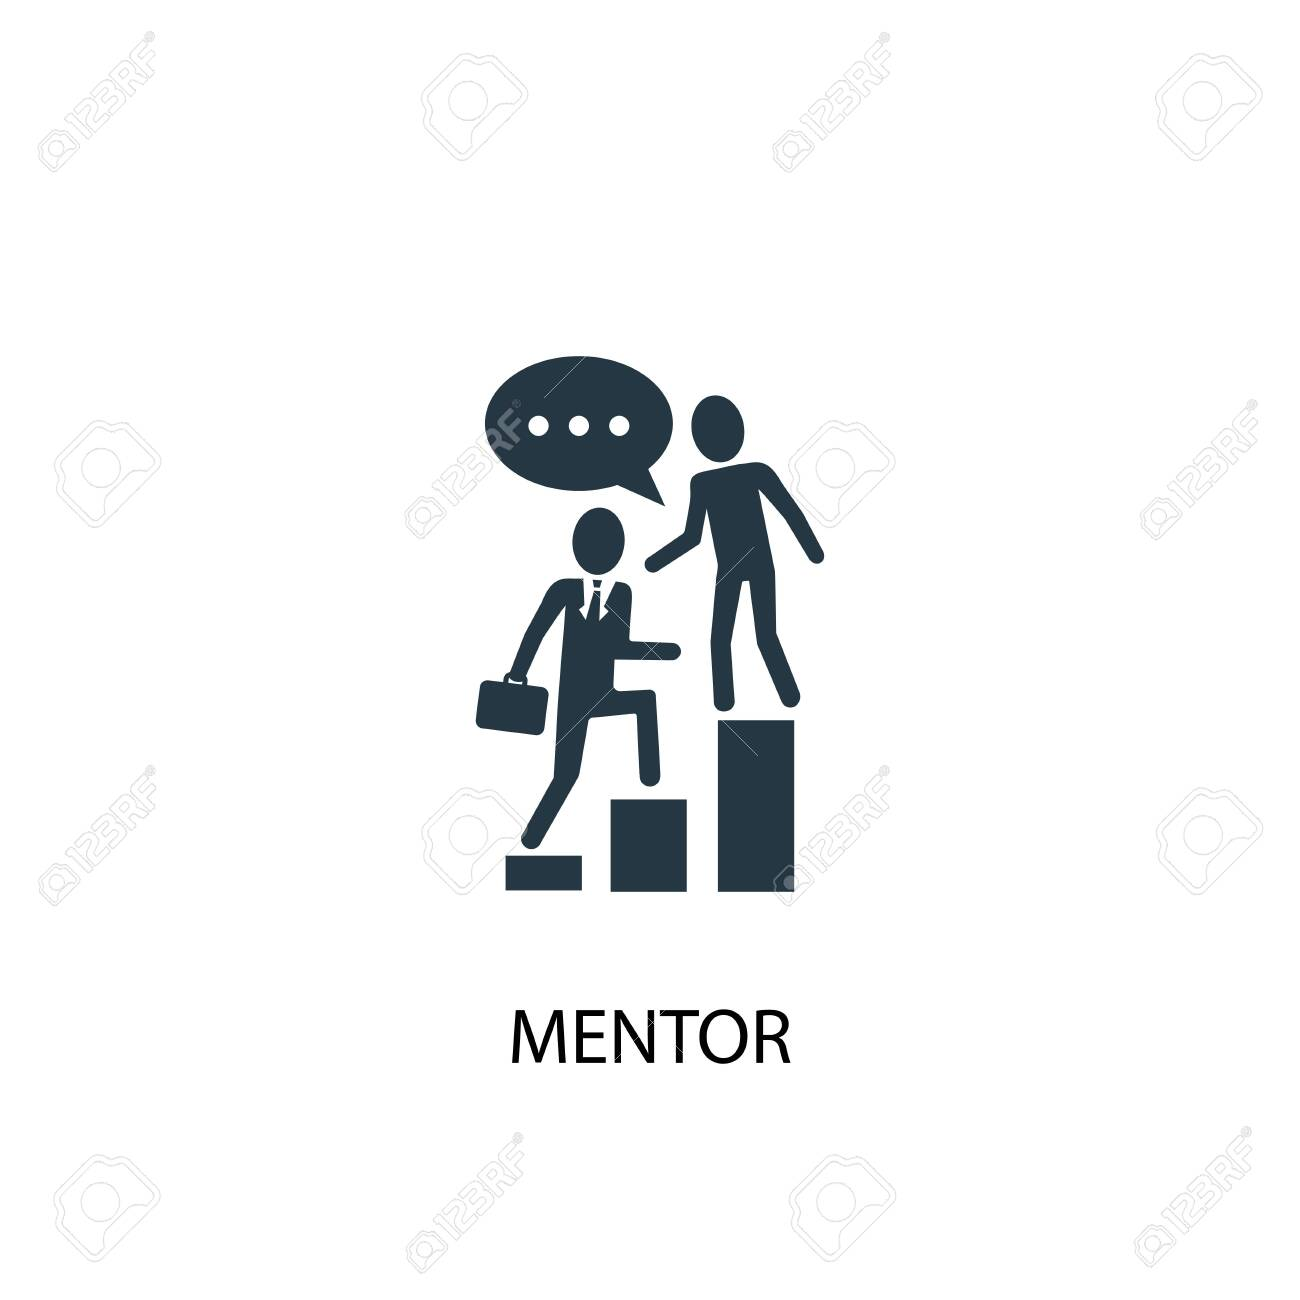 mentor icon. Simple element illustration. mentor concept symbol design. Can be used for web - 130223873